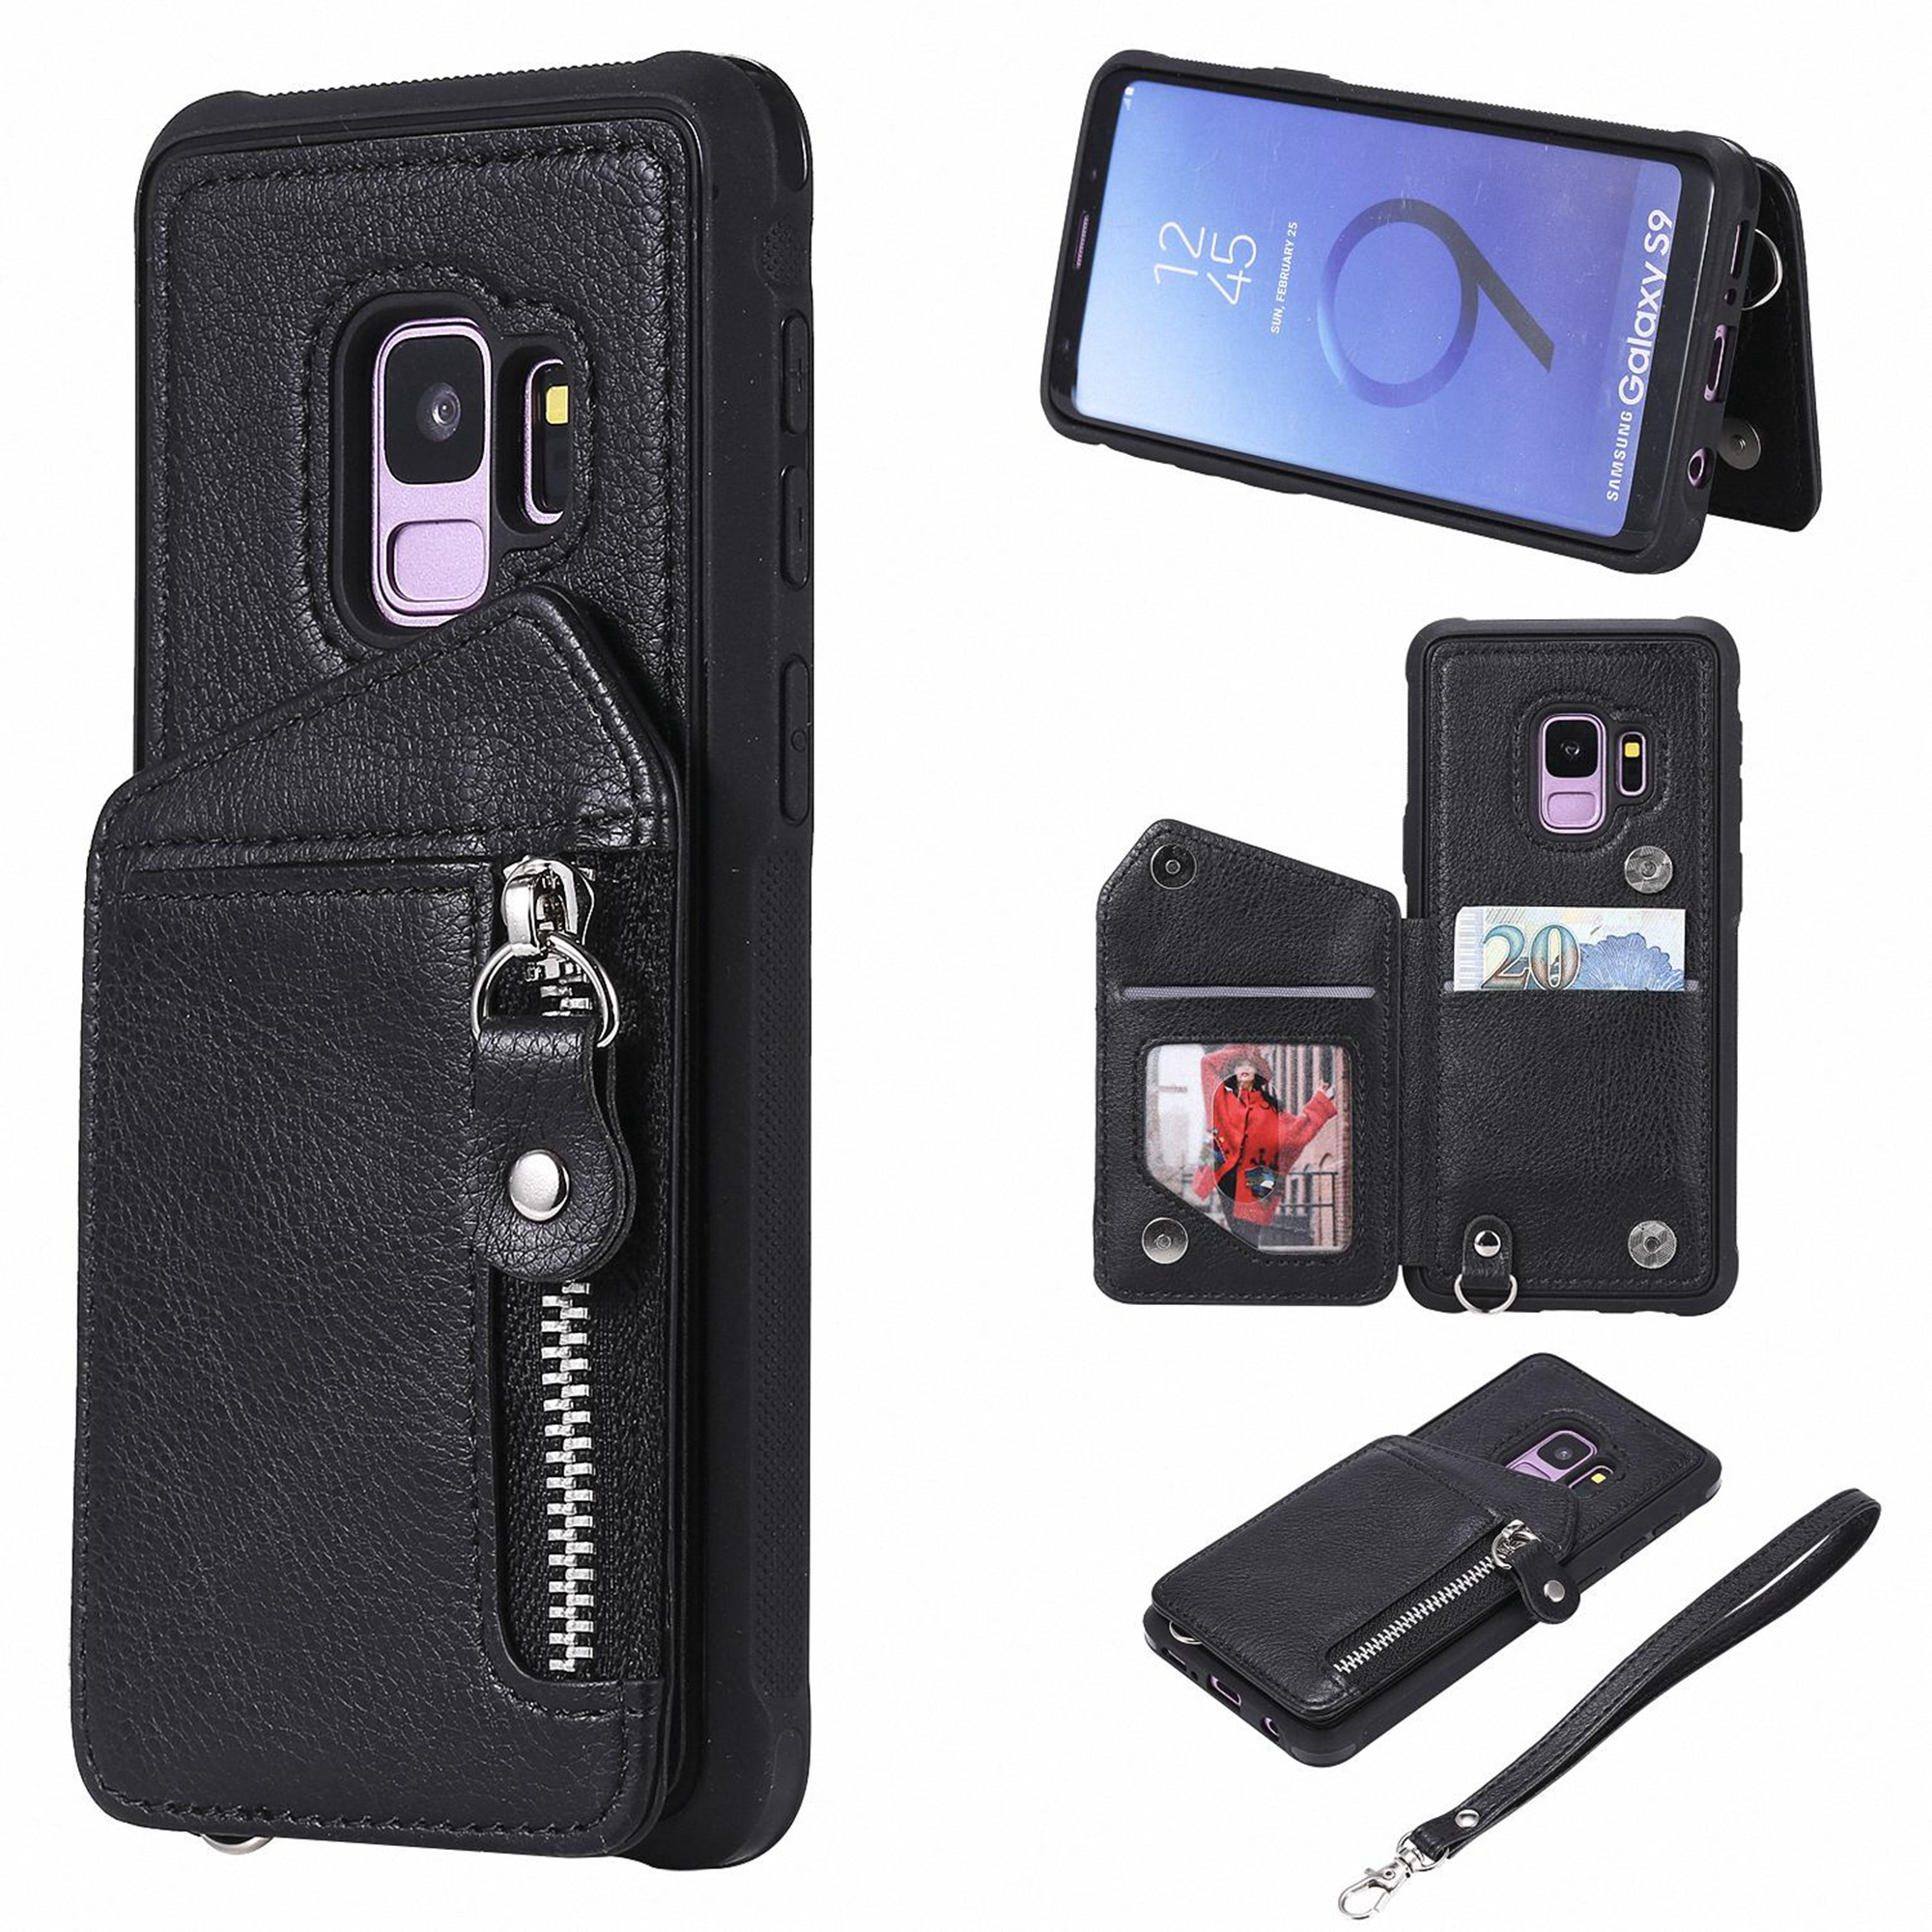 Galaxy S9 Case, Dteck PU Leather Zipper Wallet Back Kickstand Case Protective Cover With Card Slots For Samsung Galaxy S9, Black